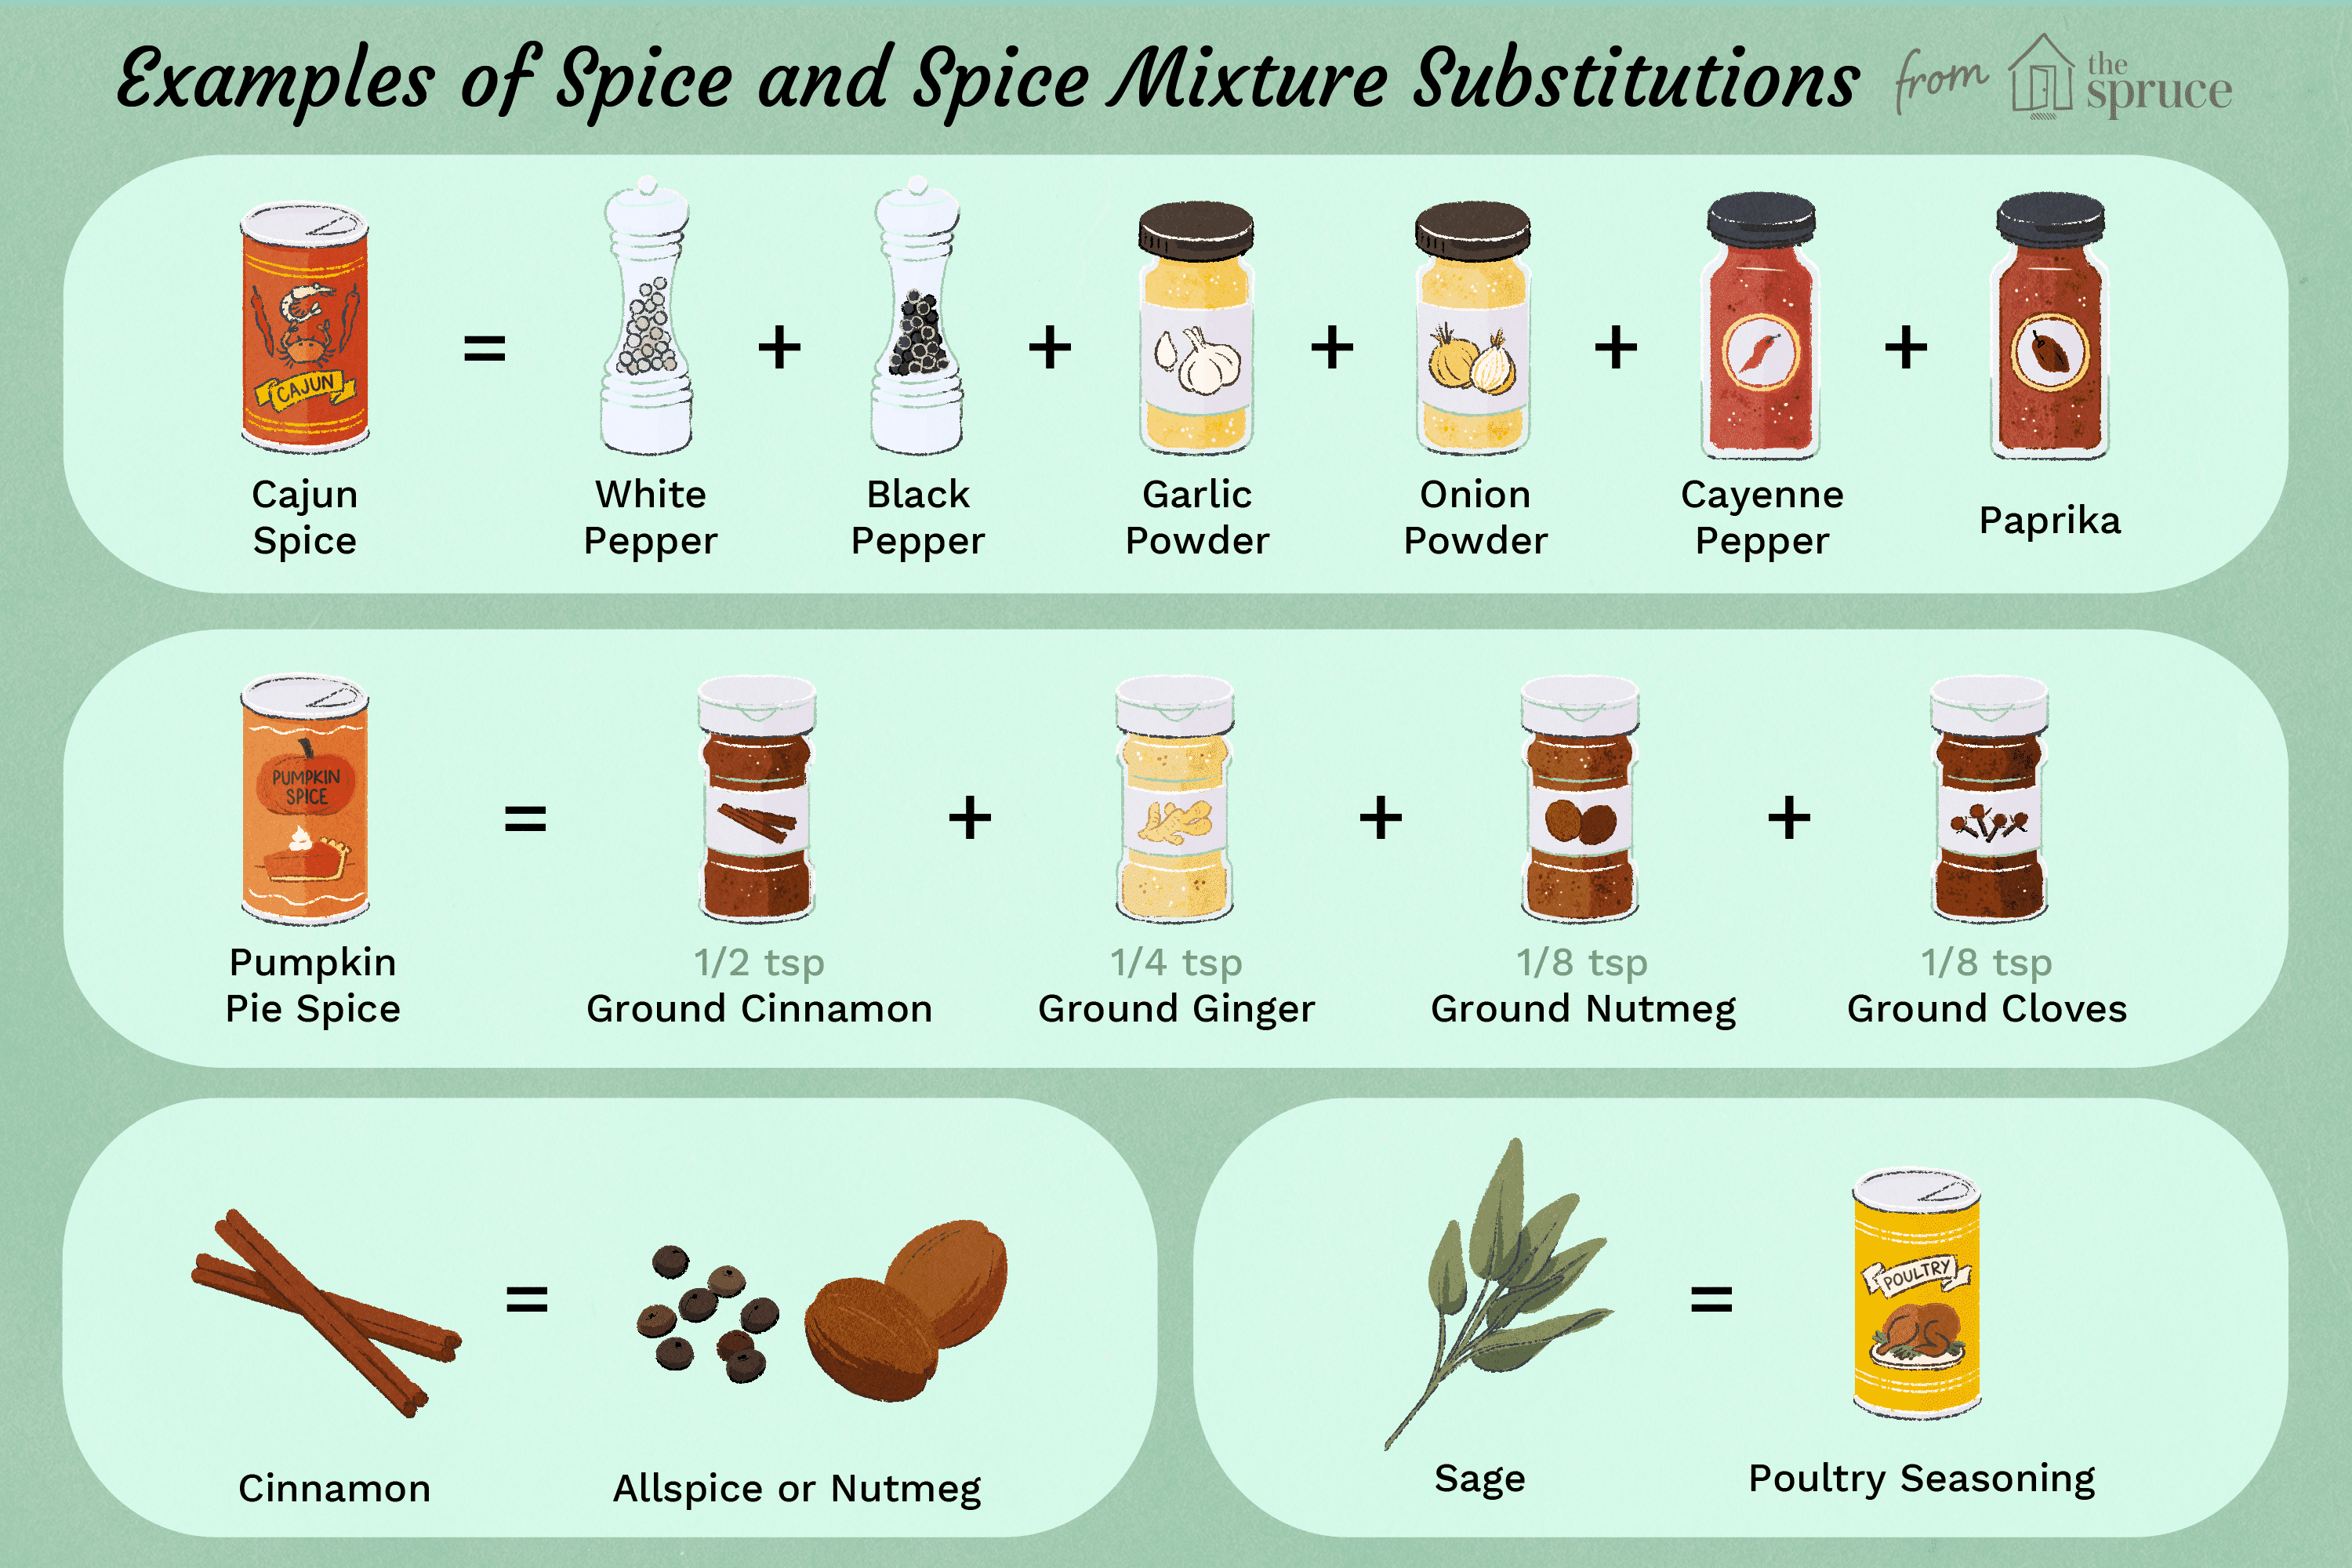 illustration that depicts examples of spice and spice mixture substitutions